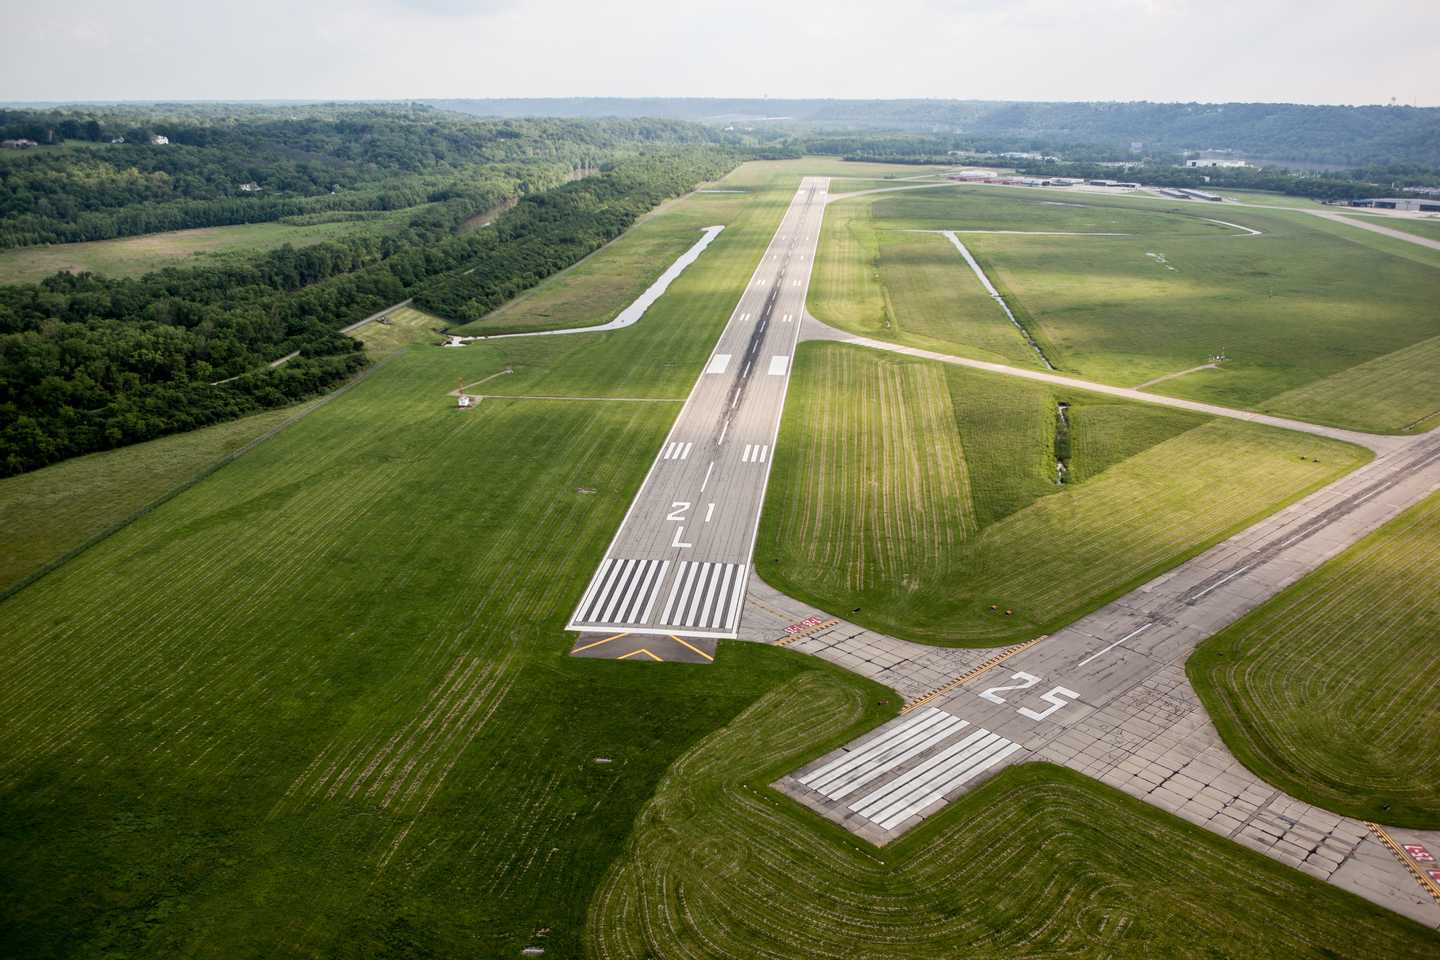 Runways seen from the air at the lunken airport.